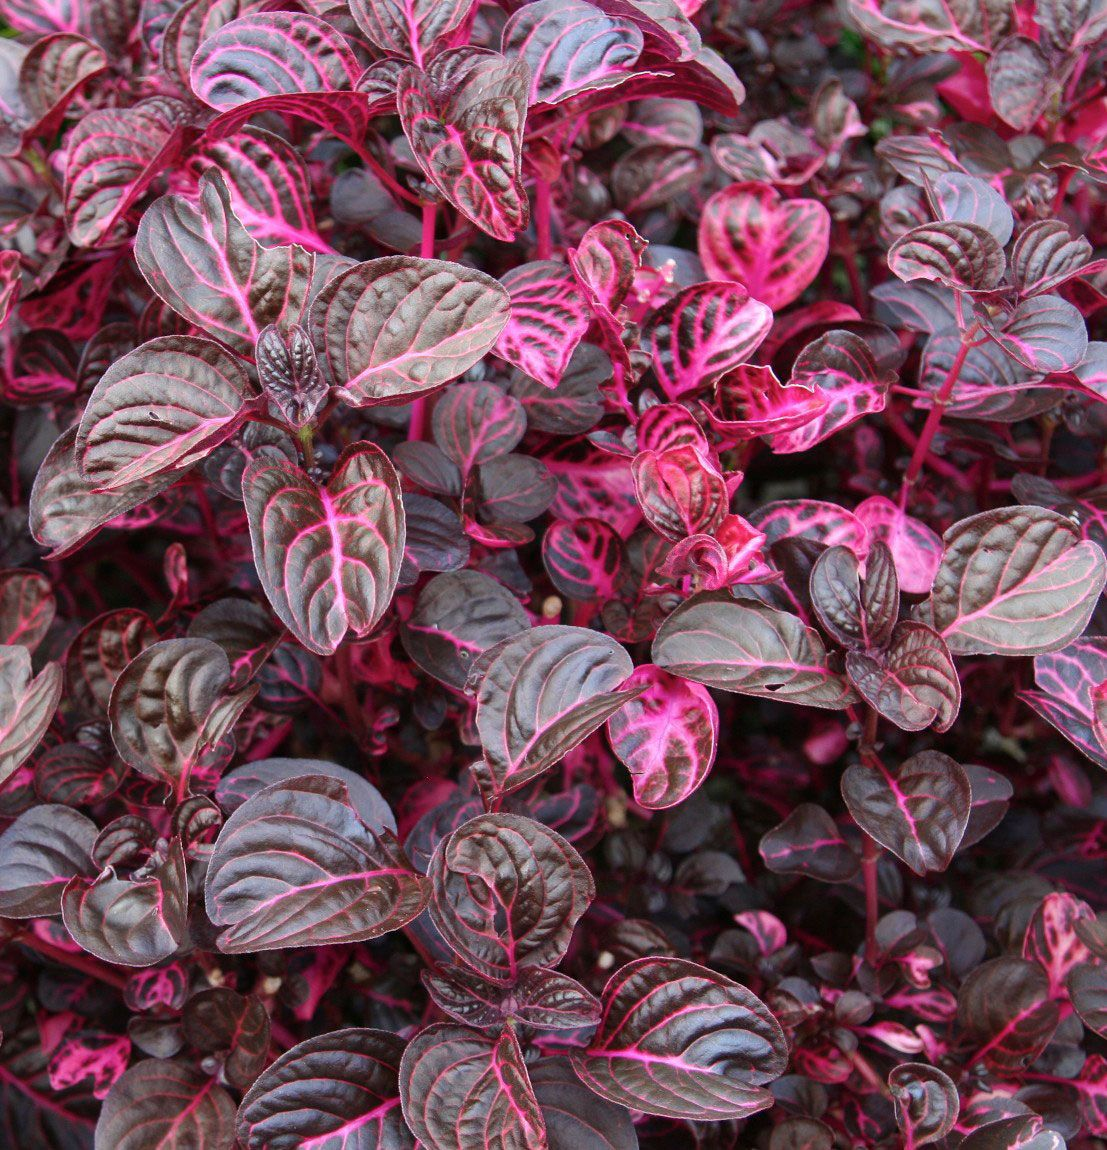 Blood Leaf Plant (Iresine herbstii) There are many